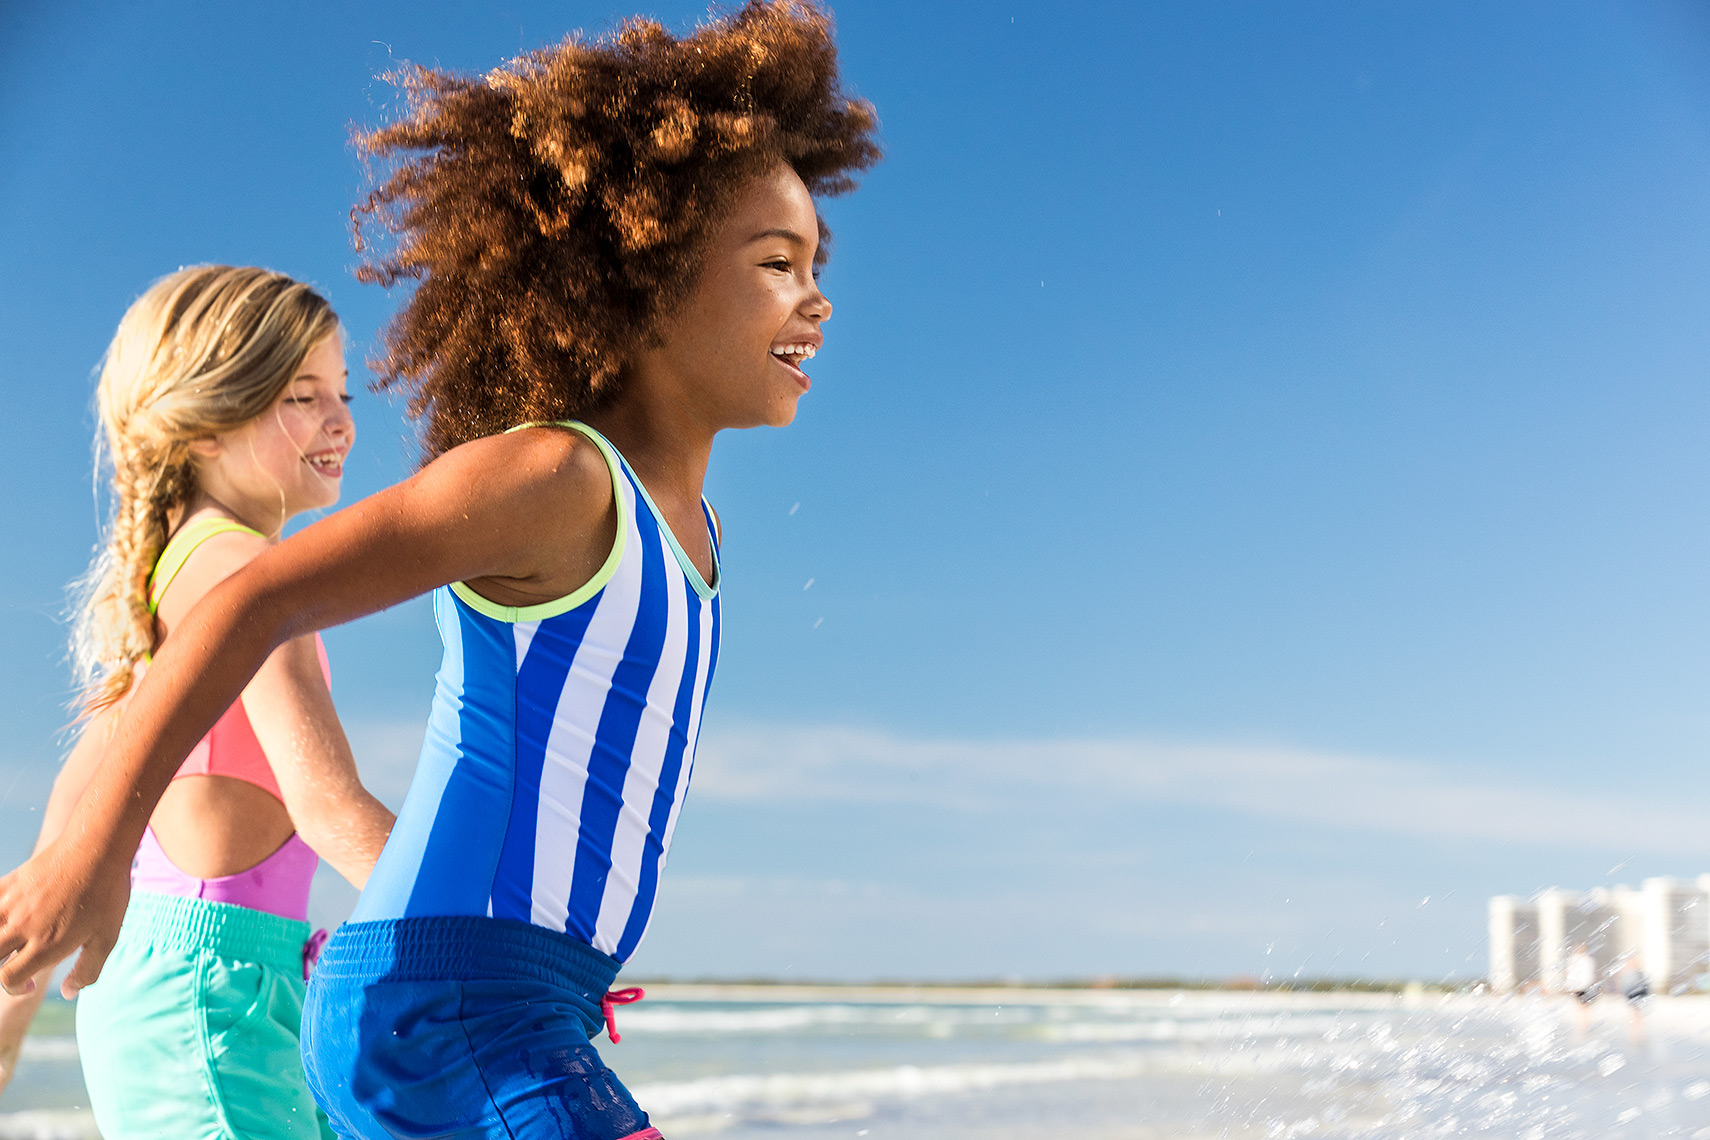 GKamper_Beach_Walking_AA_Caucasian_Girls_Day5_24134-1